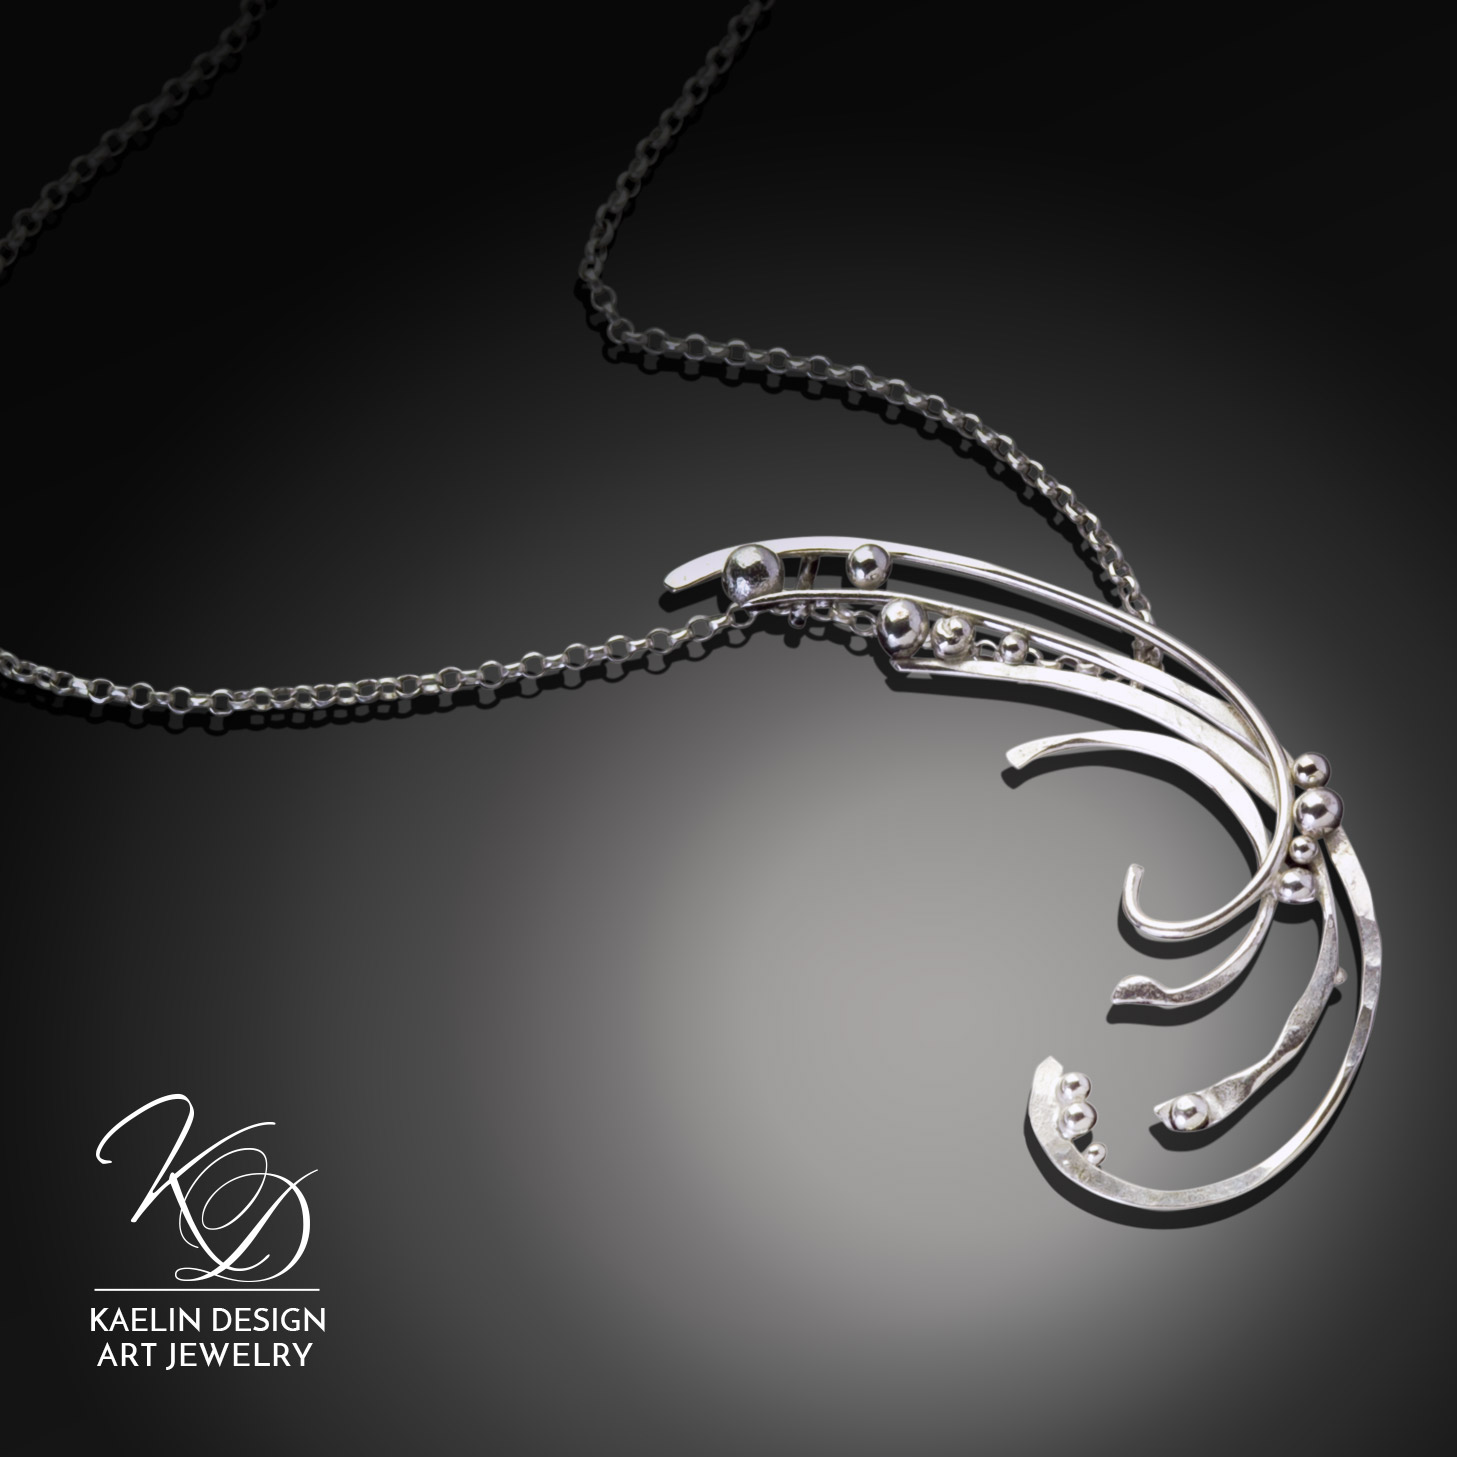 Swept Away Fine Art Jewelry Pendant in Hand Forged Sterling Silver by Kaelin Design